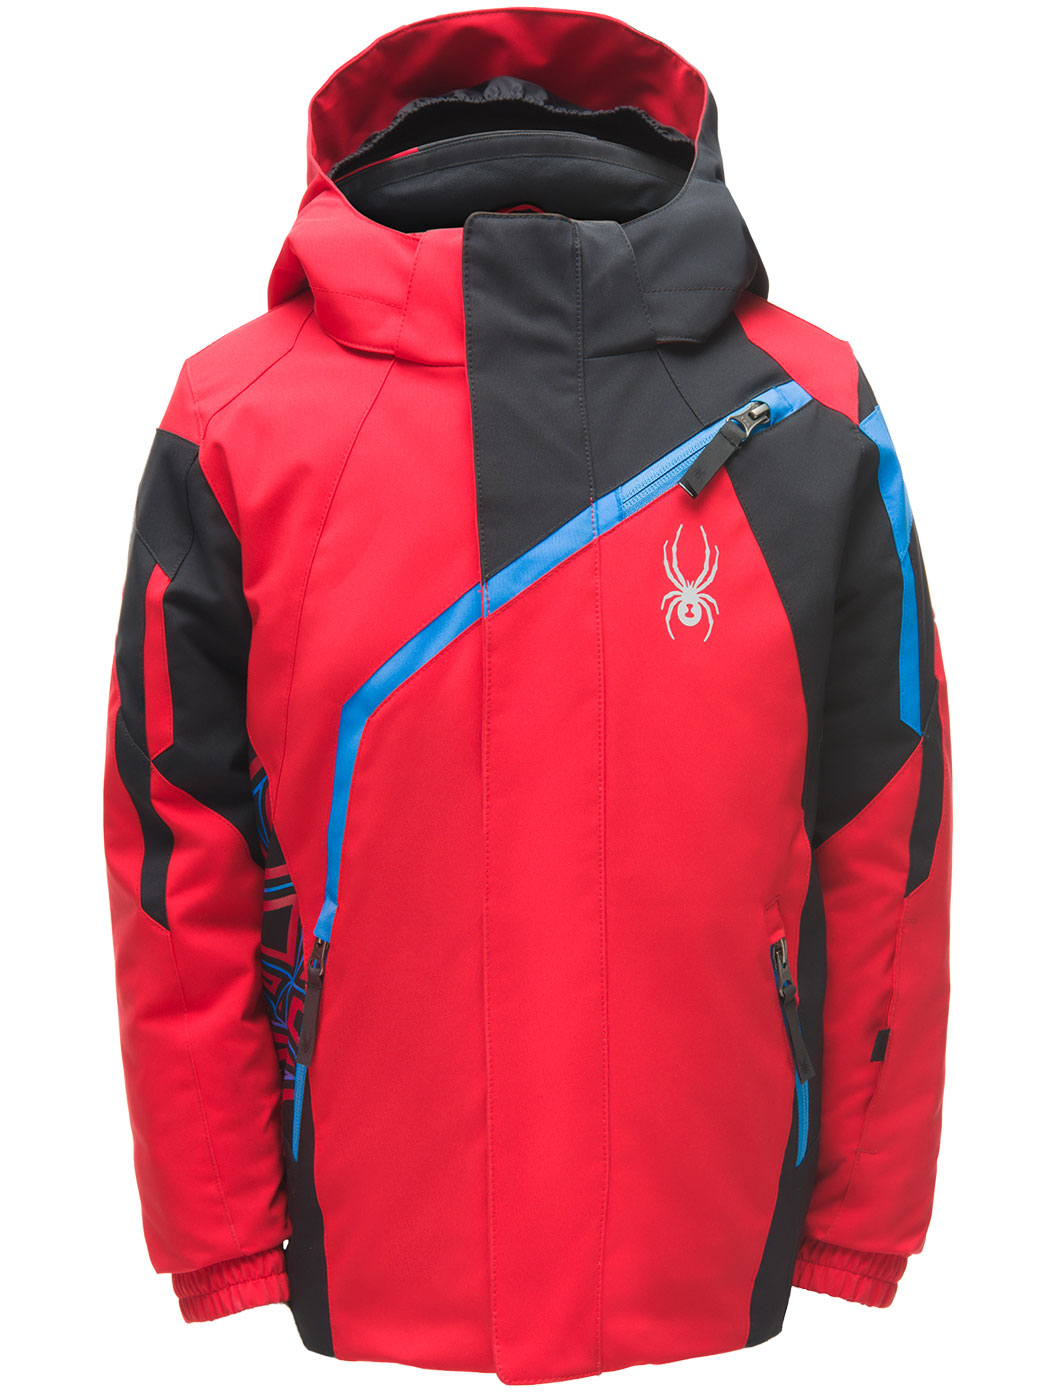 844cadb6841d Spyder Boy s Mini Challenger Jkt - Ski Jackets - buy online at Sport ...